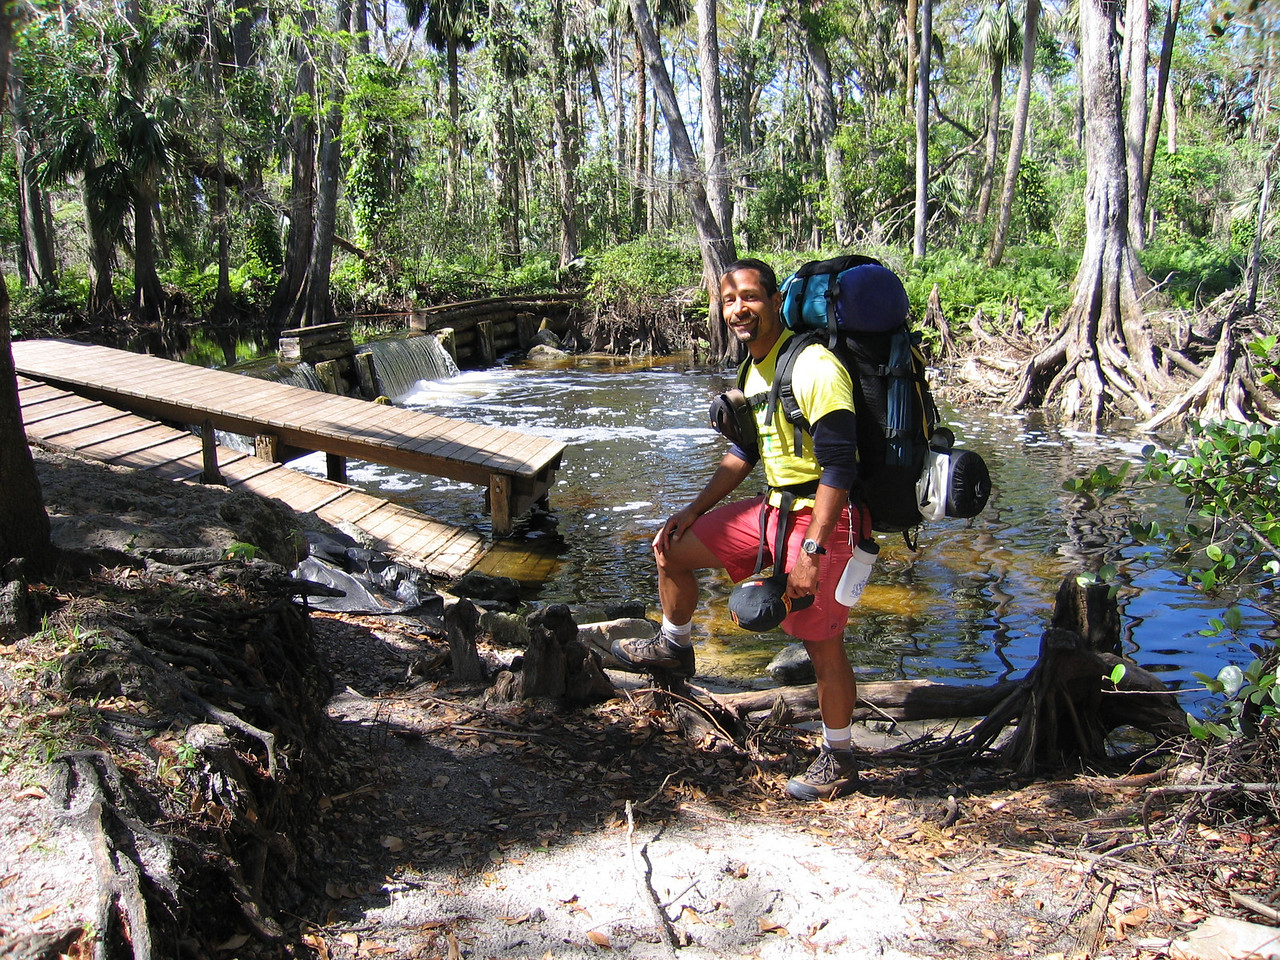 Raphael at the Loxahatchee River<br /> photo credit: Raphael Clemente / Florida Trail Association